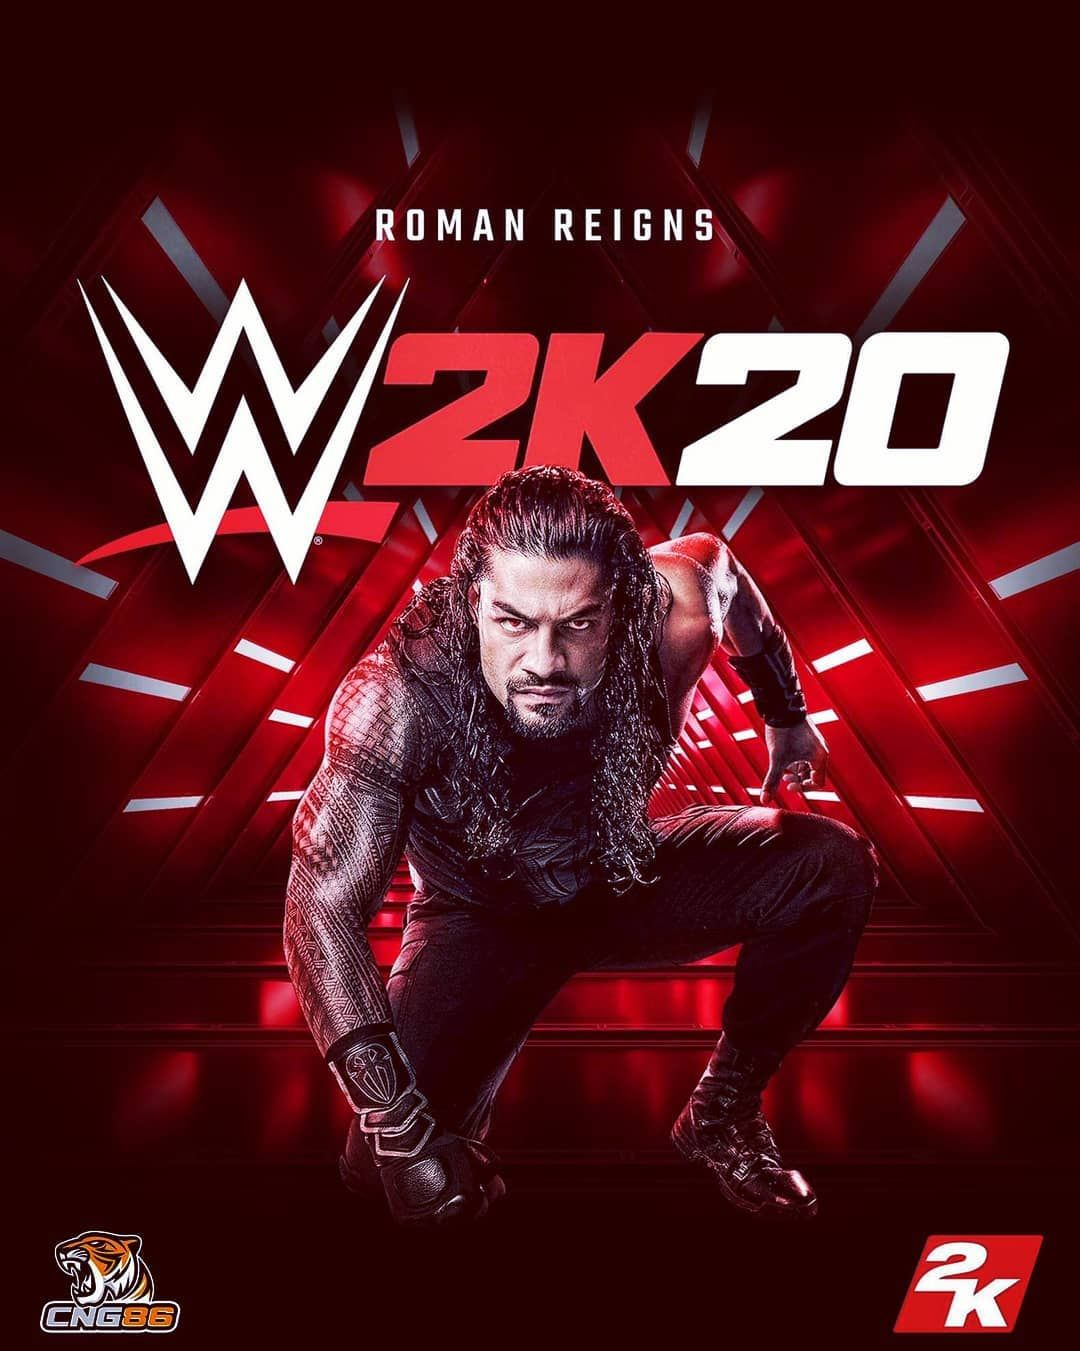 ℛ𝓞ℳ𝓐𝓝 ℛ𝓔𝓘𝓖𝓝𝓢 On Instagram Romanreigns Is The Cover Of Wwe2k20 Raw Roma Roman Reigns Wwe Superstar Roman Reigns Wwe Roman Reigns